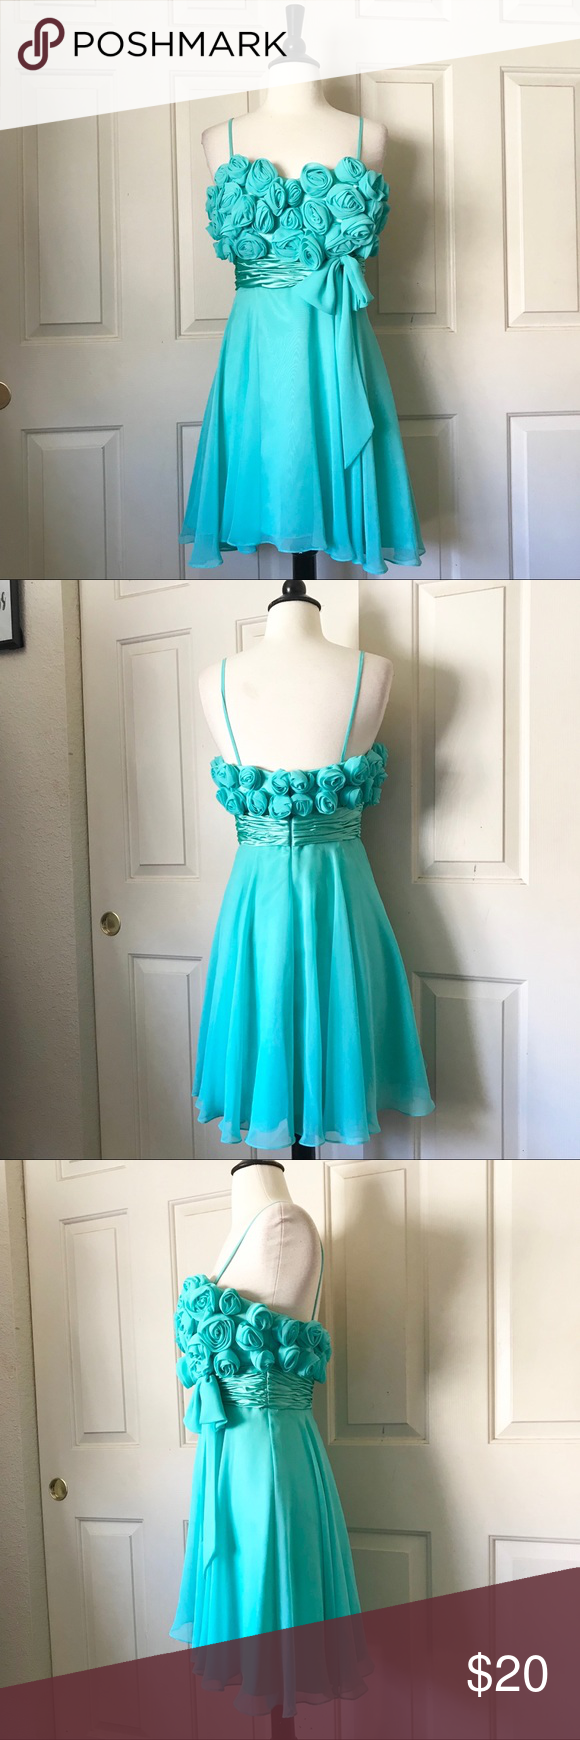 Preowned Terani Teal Party Dress Size 4 | Teal party, Terani couture ...